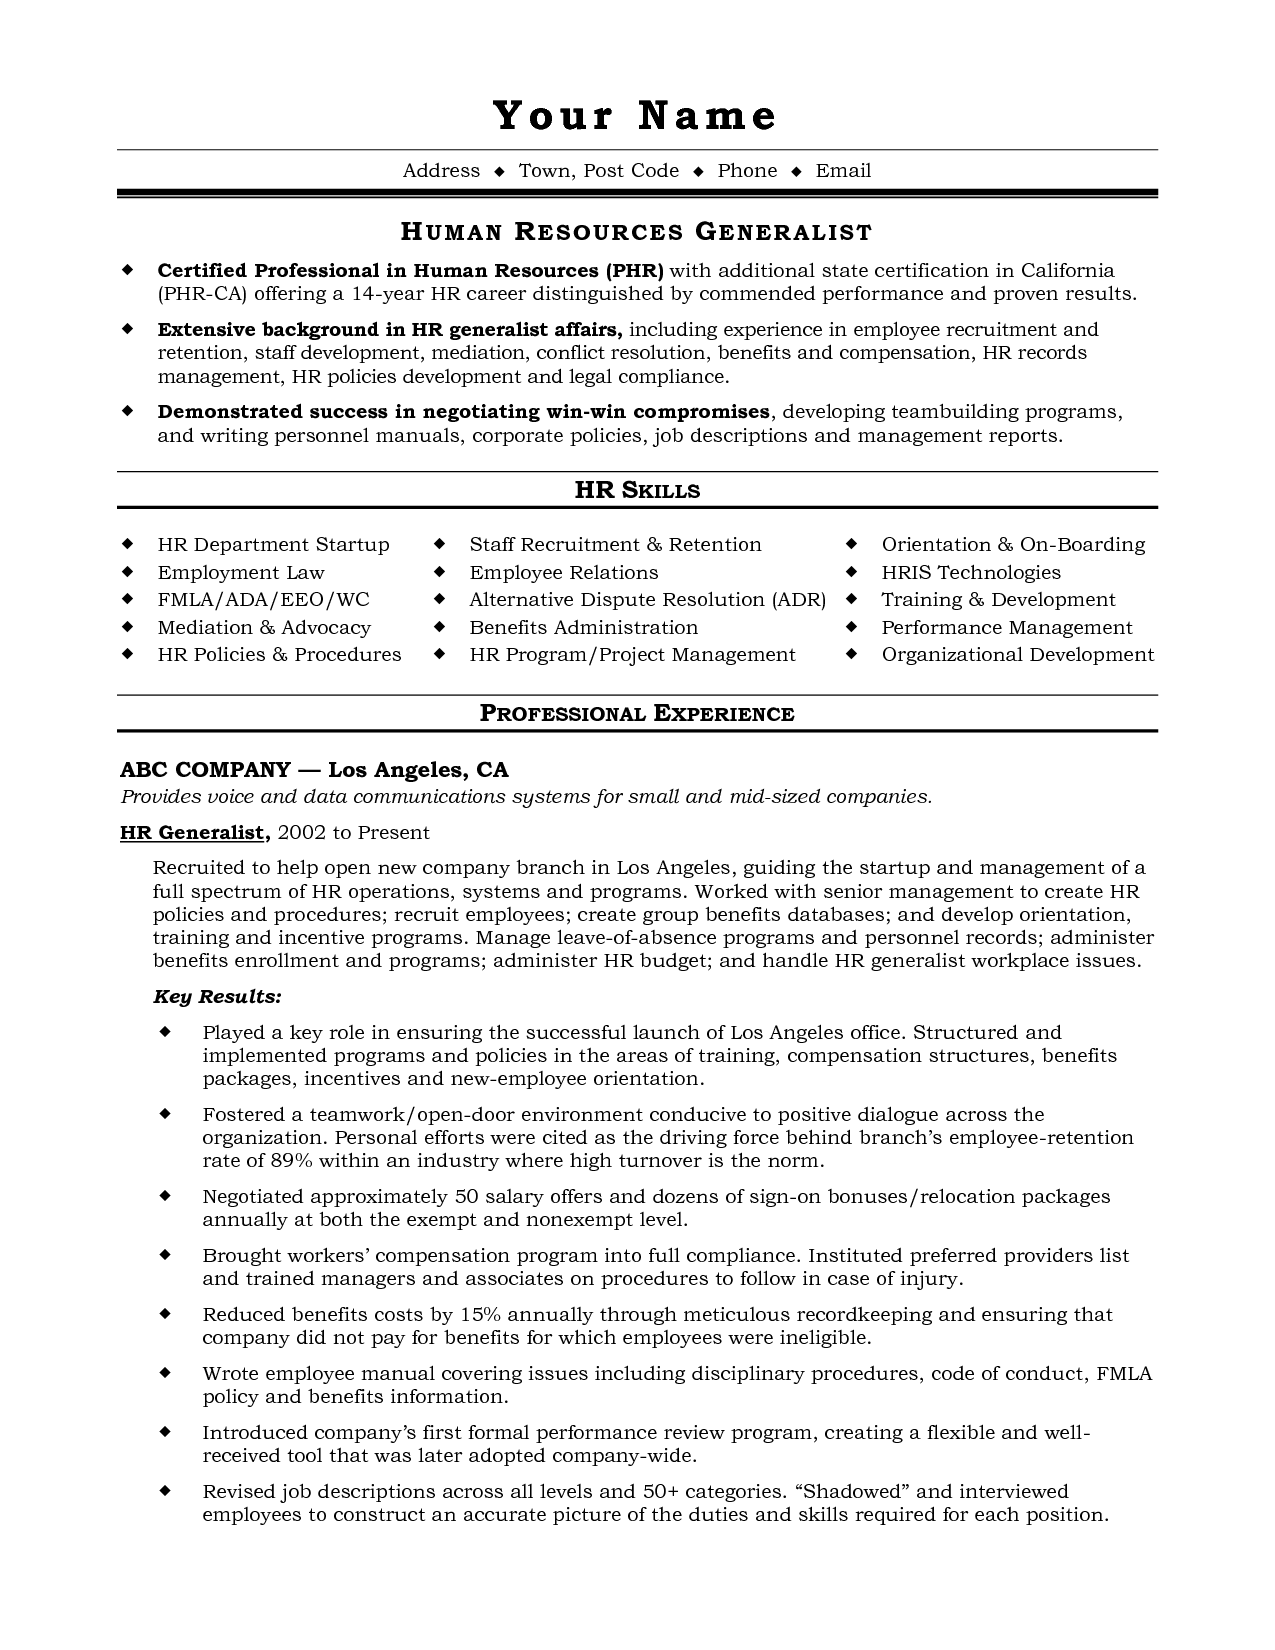 free resume templates human resources template example personal summary for 1 page word professional examples nurses